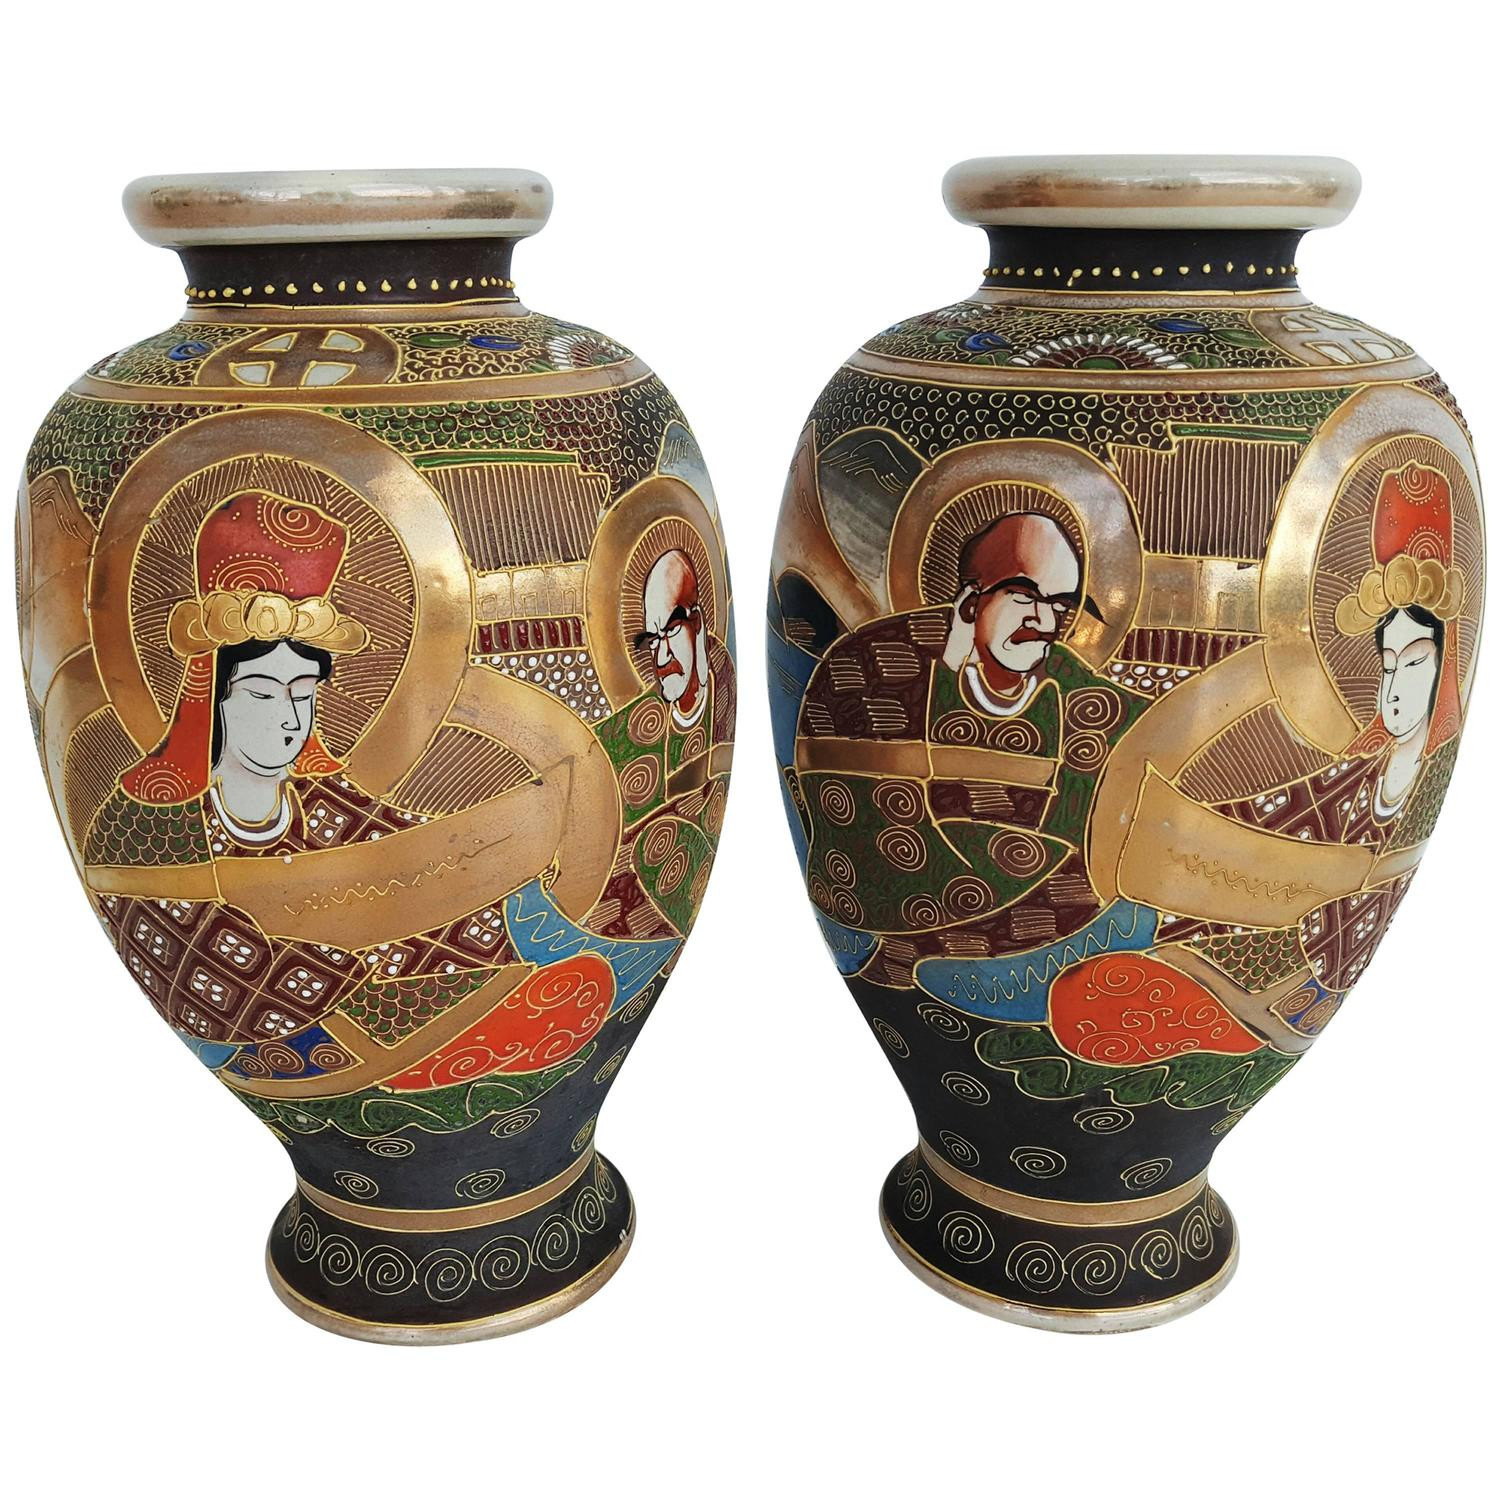 Art Deco Vases Antique Of Early 20th Century Pair Of Japanese Satsuma Vases In Painted Ceramic within Early 20th Century Pair Of Japanese Satsuma Vases In Painted Ceramic for Sale at 1stdibs